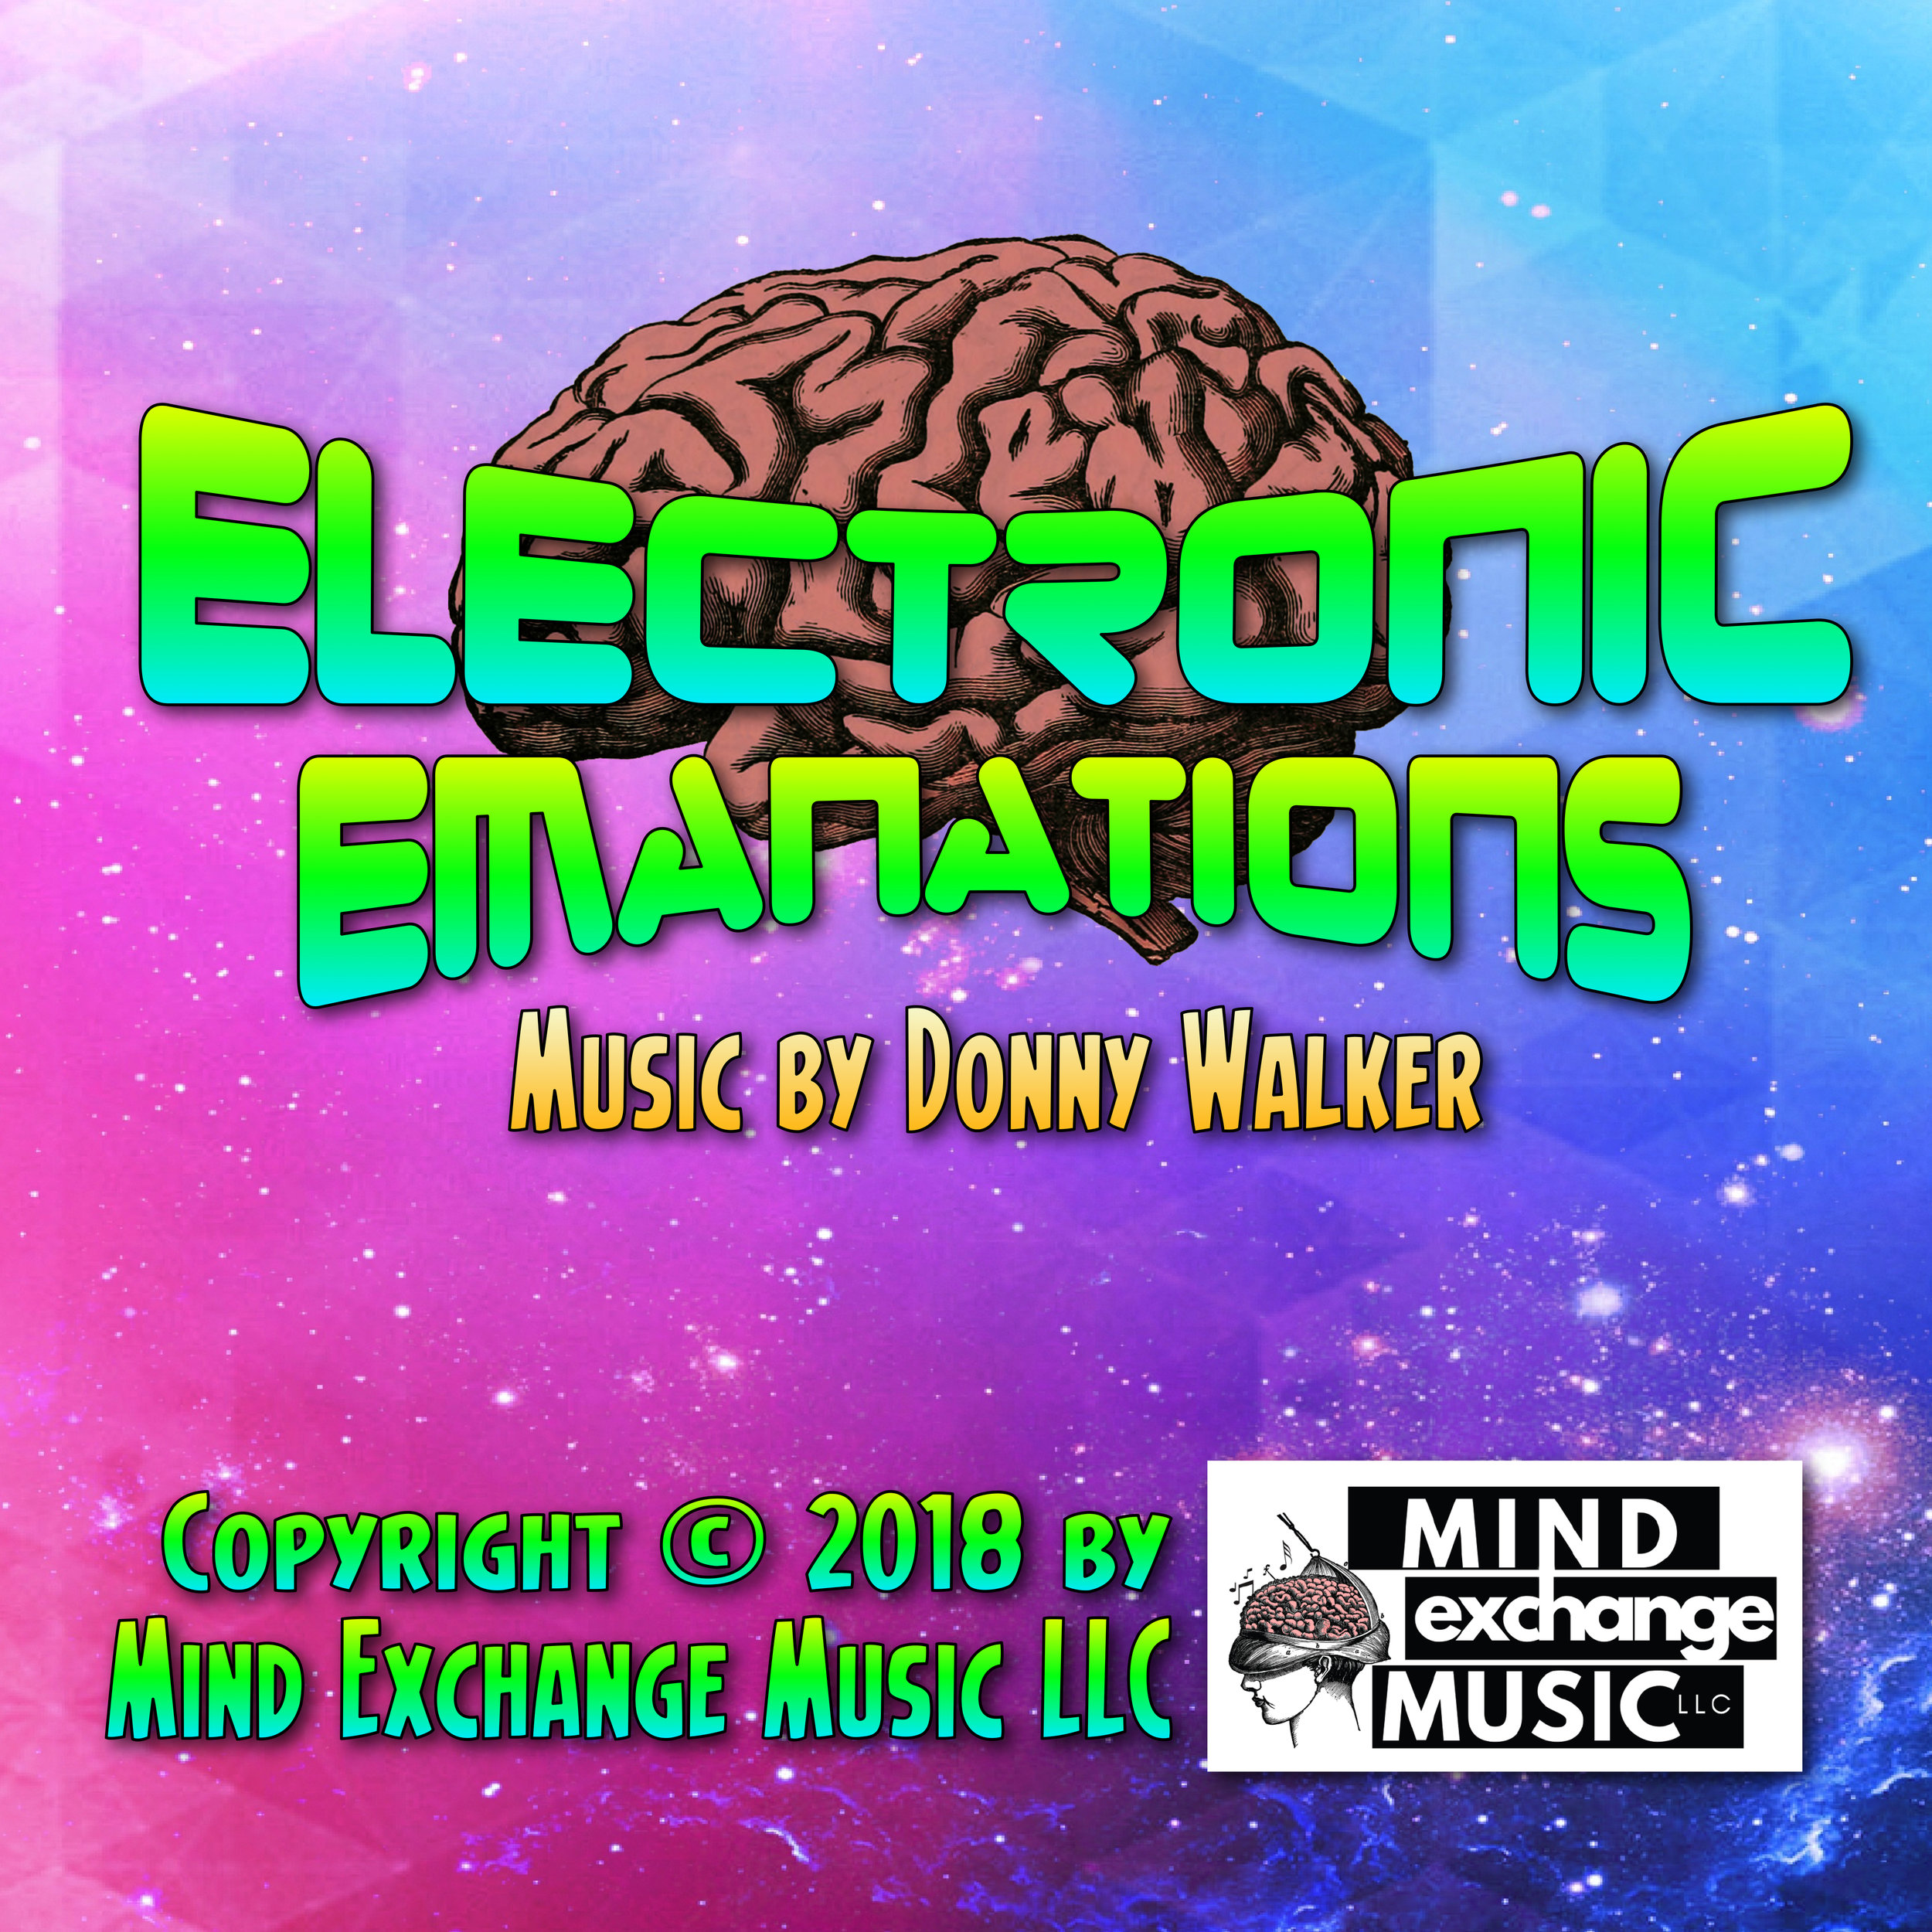 Mind Exchange Music's Electronic Emanations Record Cover